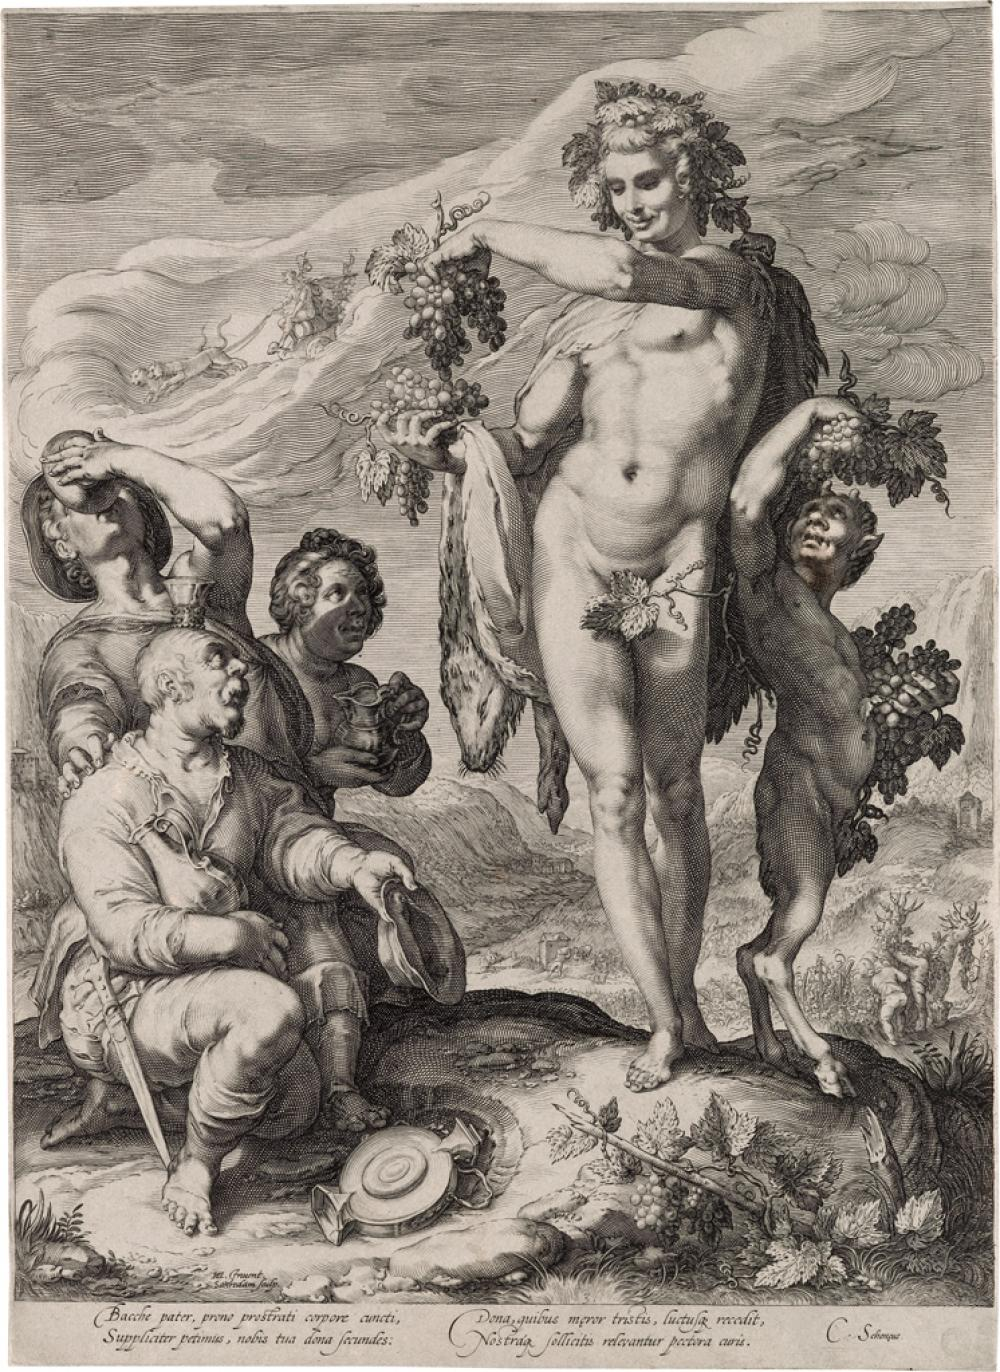 JAN SAENREDAM (after Goltzius) Hommage Paid to Bacchus